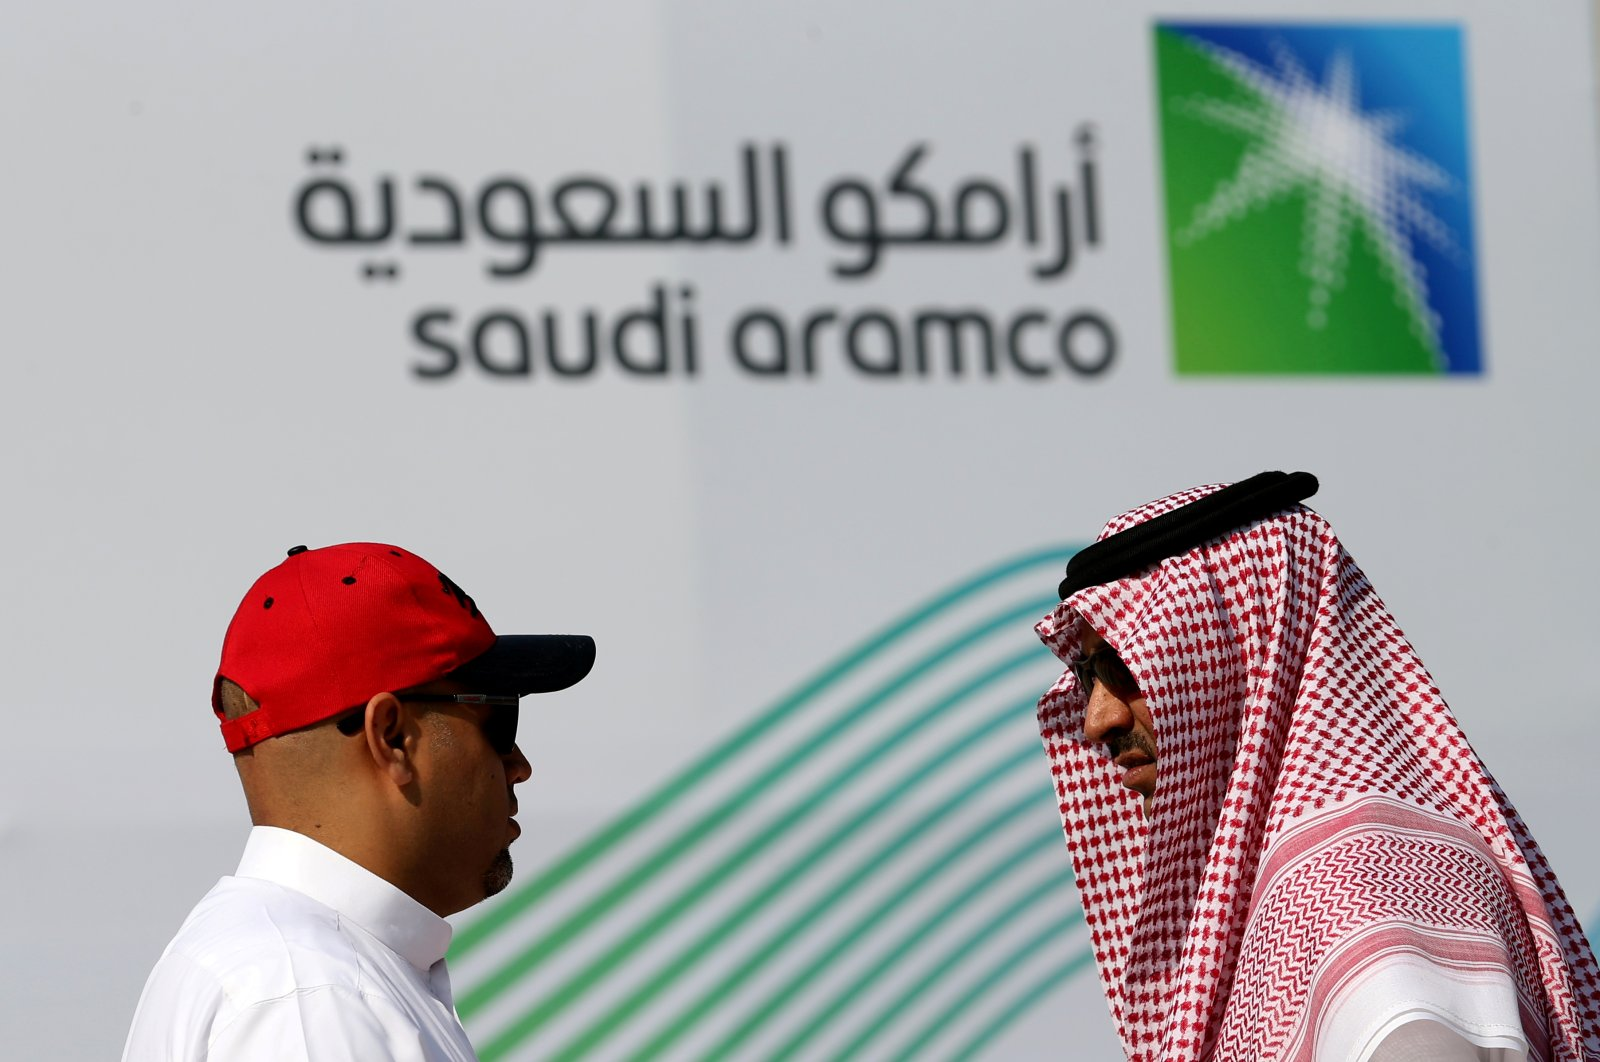 Members of media chat before the start of a press conference by Aramco at the Plaza Conference Center in Dhahran, Saudi Arabia, Nov. 3, 2019. (Reuters Photo)